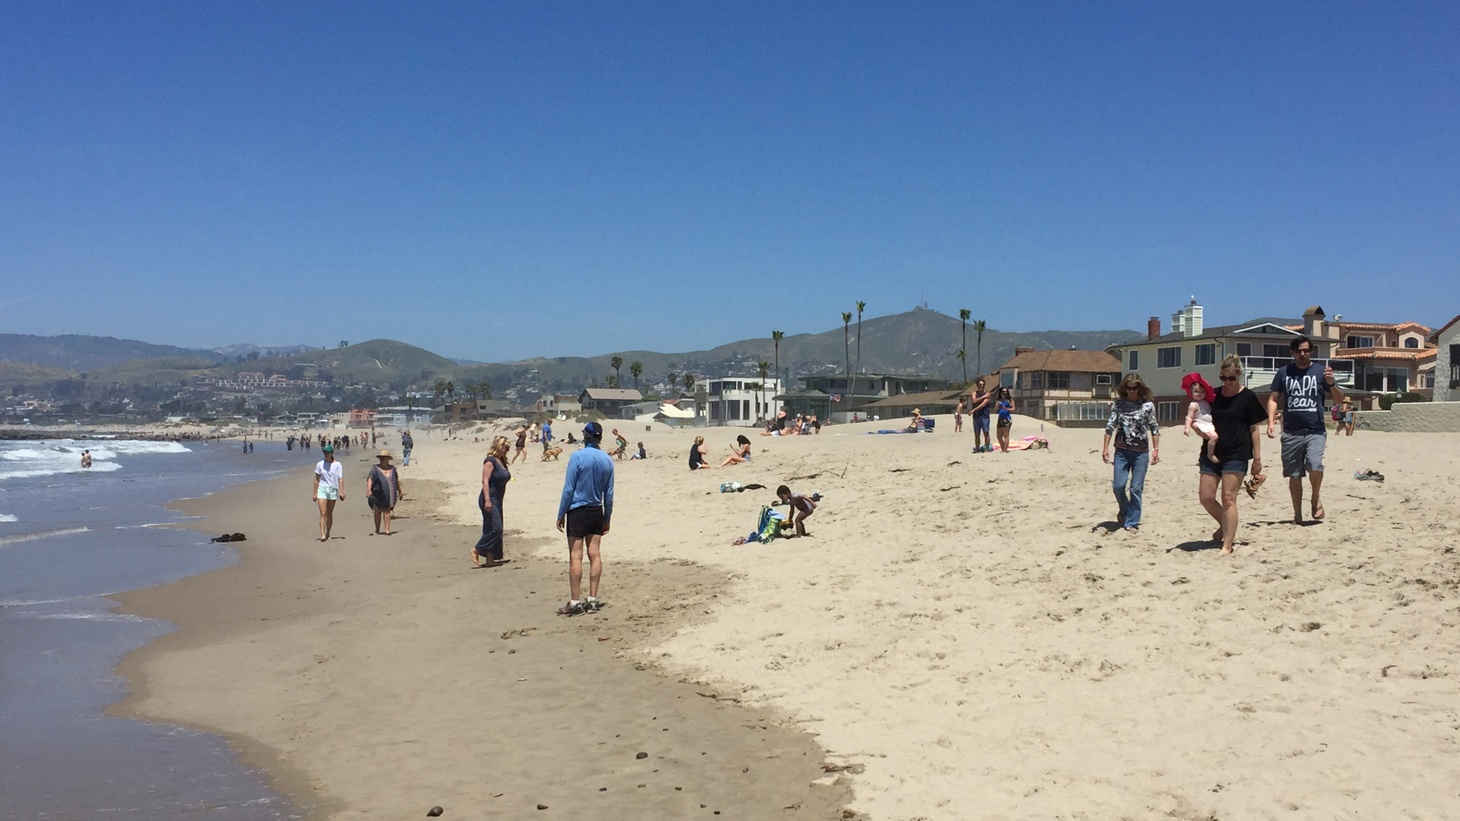 Thousands flocked to beaches in Ventura County during Southern California's first major heat wave.